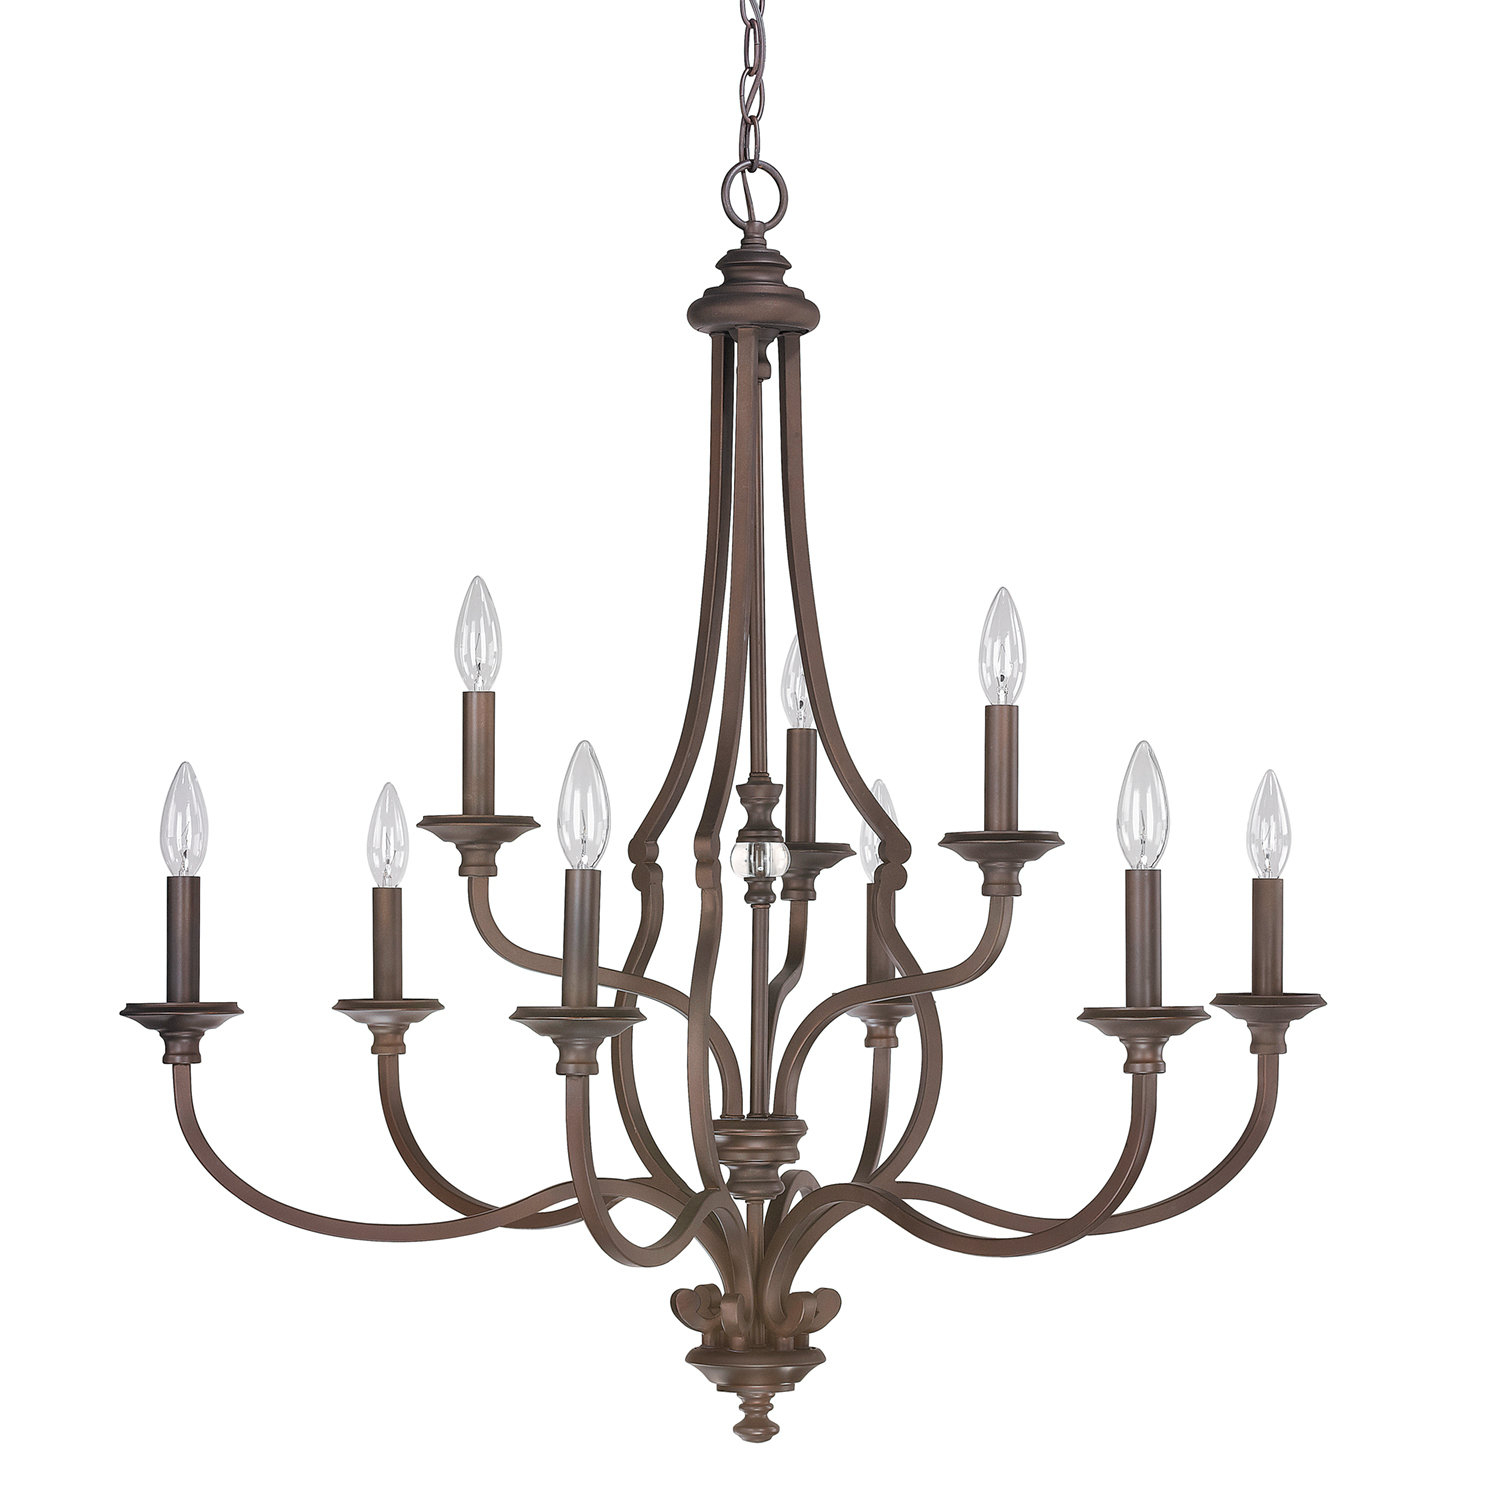 Darby Home Co Jaclyn 9 Light Candle Style Chandelier Inside Gaines 9 Light Candle Style Chandeliers (Photo 5 of 30)